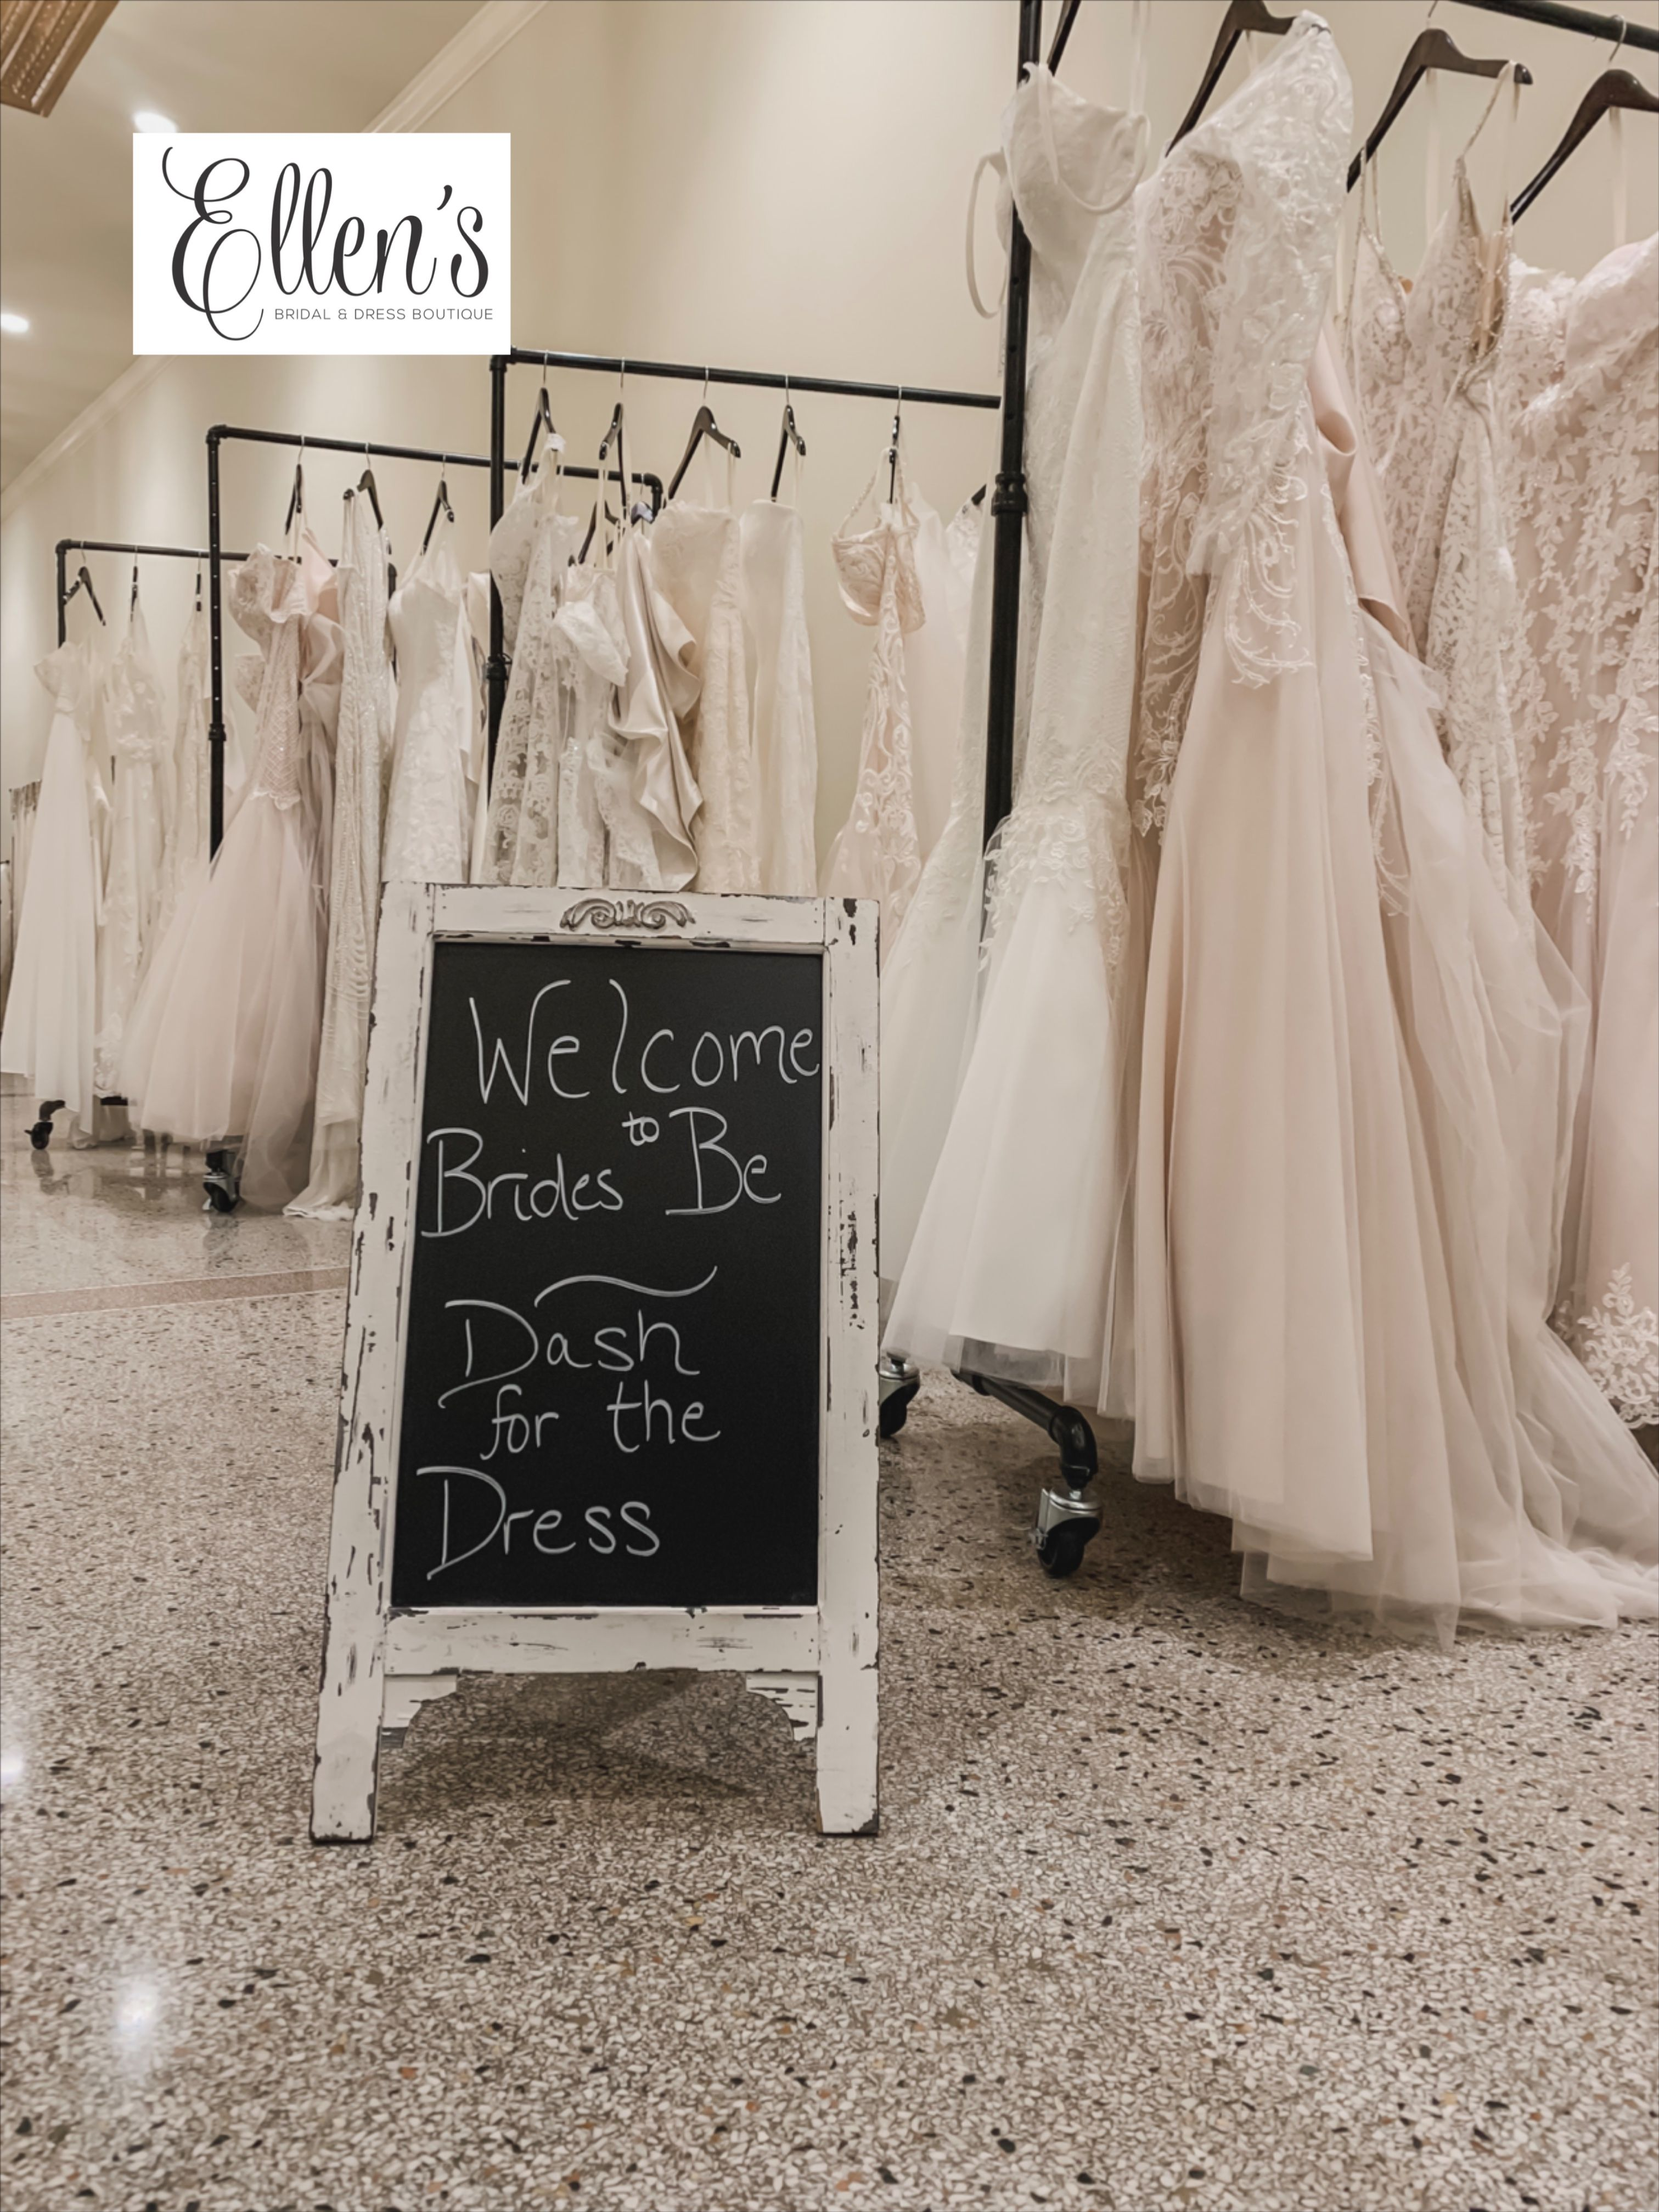 Our Annual Dash For The Dress Sale Was A Success 10 Brides Found Their Dream Dresses This Weekend Th Wedding Dresses For Sale Upscale Wedding Dress Bridal